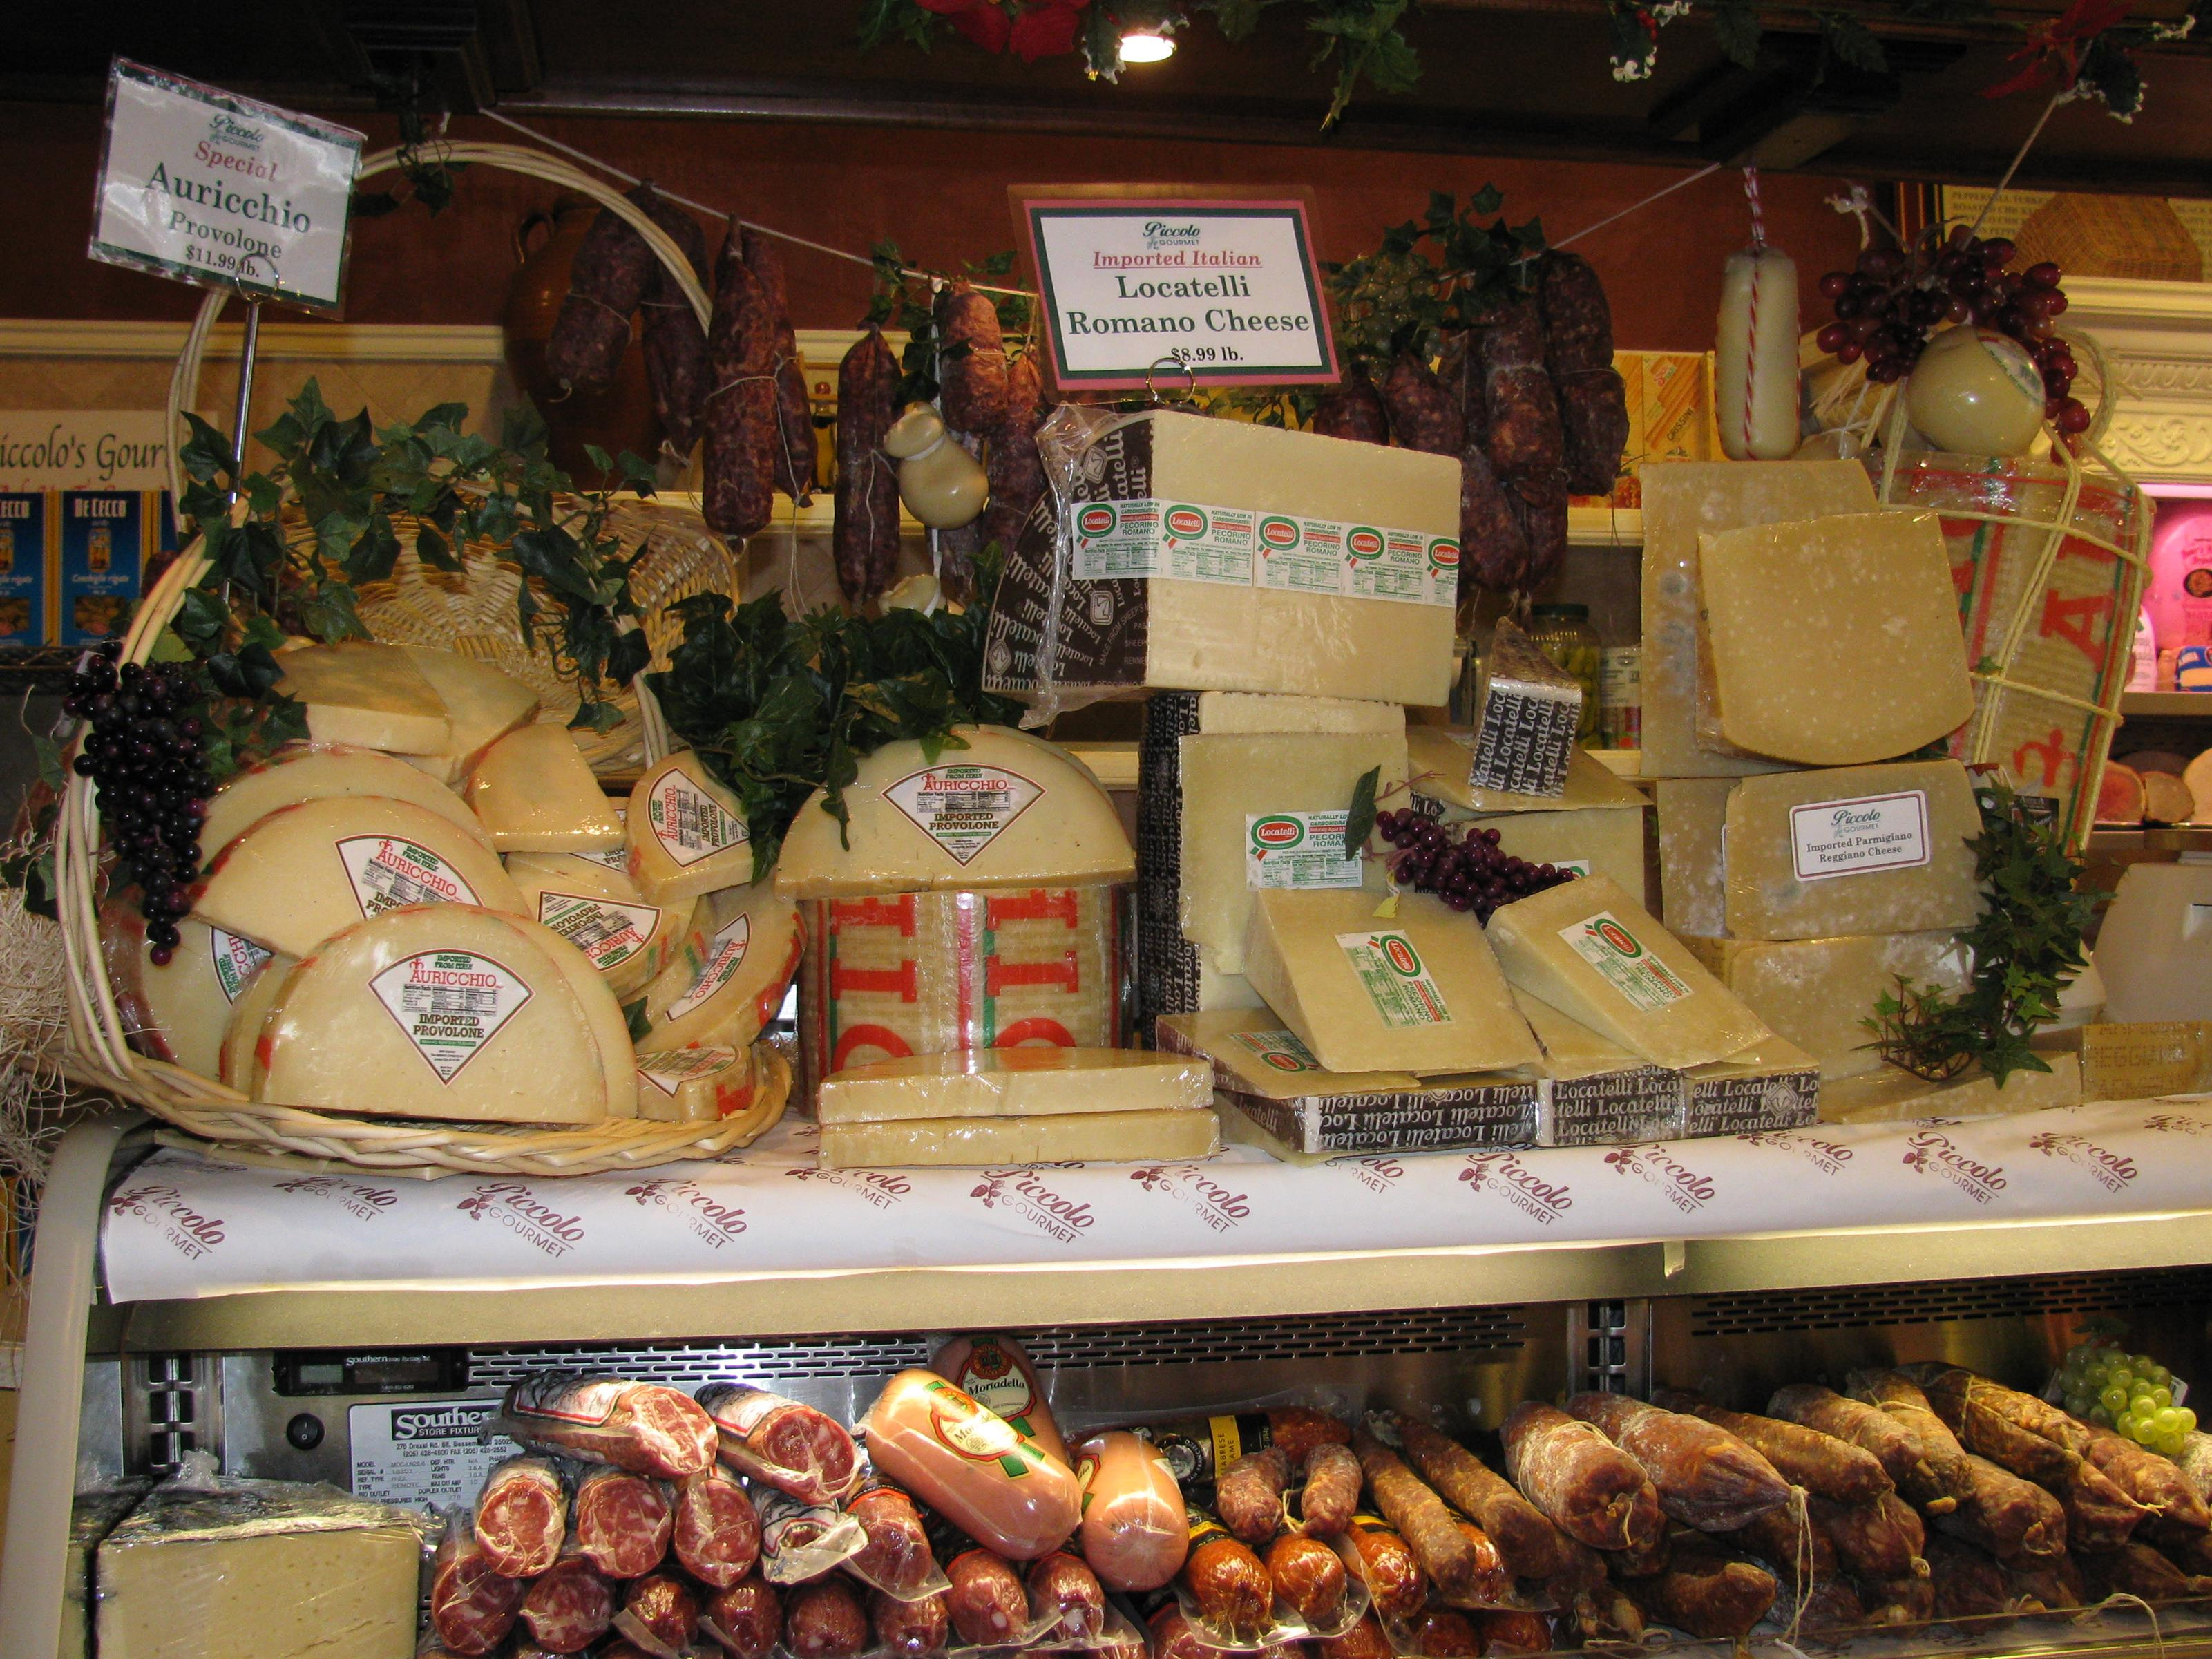 Cheeses and meats on display